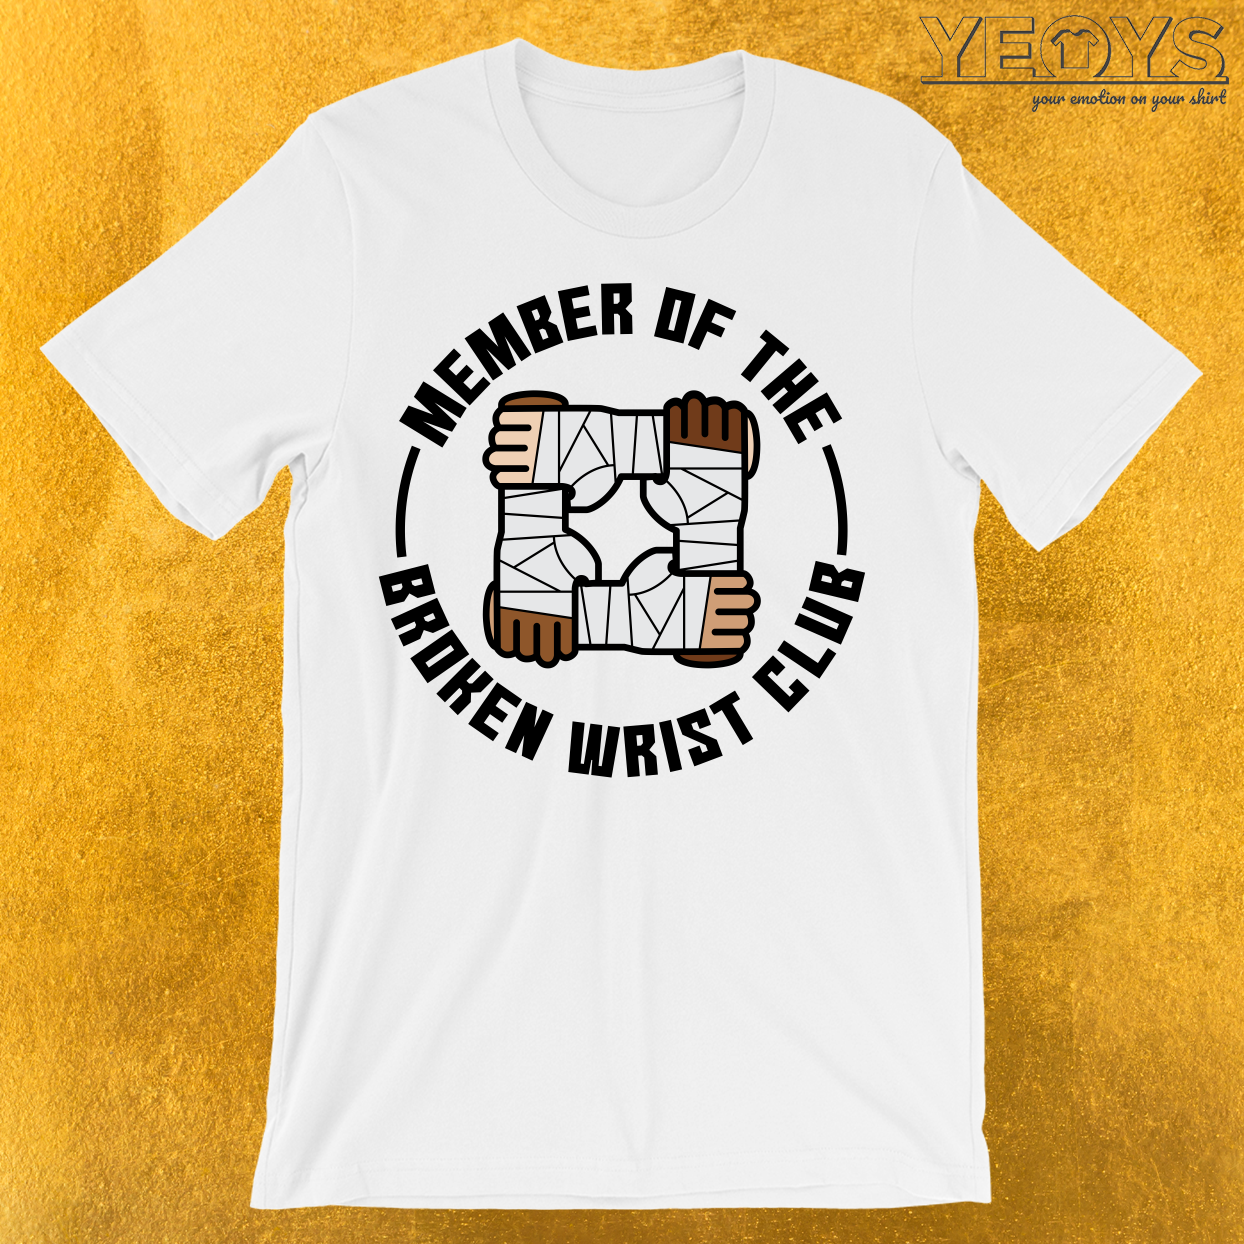 Member Of The Broken Wrist Club T-Shirt